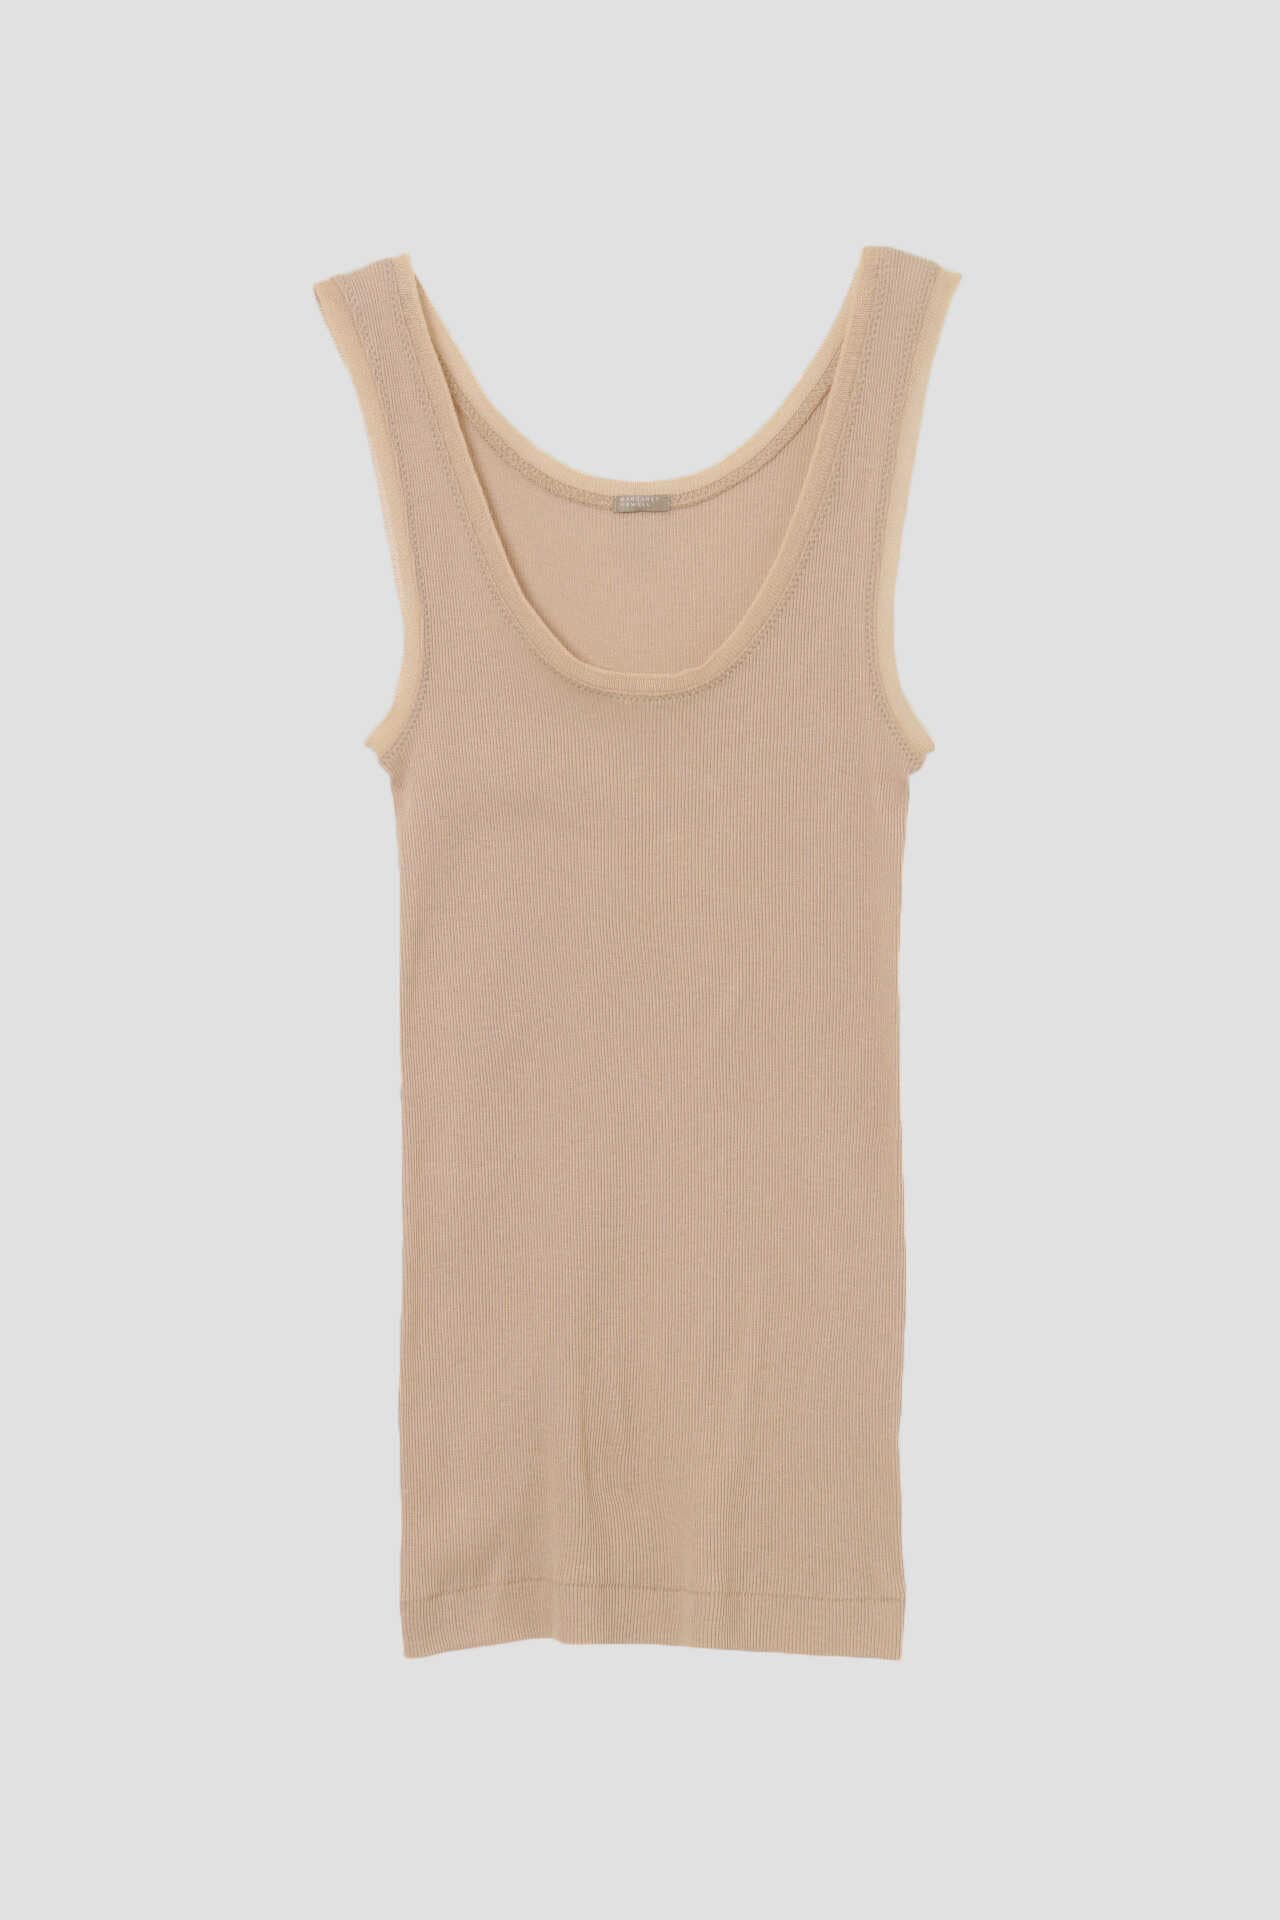 SUPIMA COTTON RIB TANK5